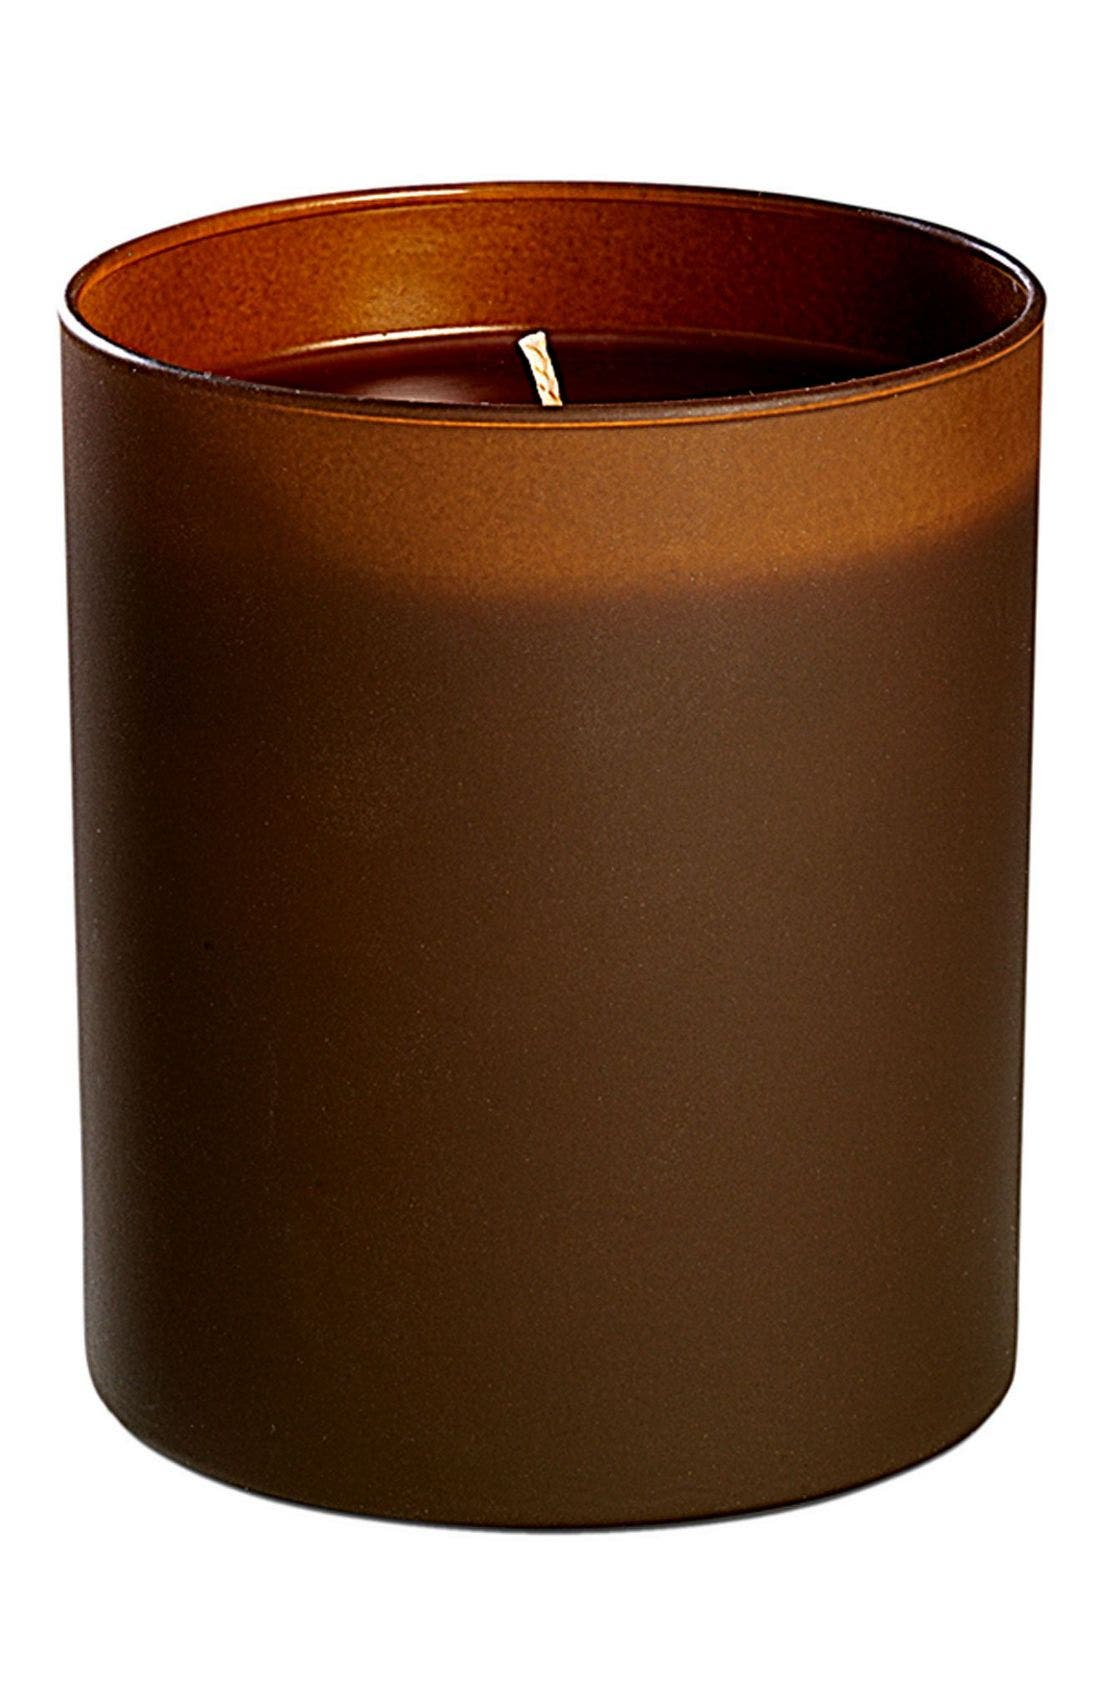 'Chocolate Truffle' Candle,                             Main thumbnail 1, color,                             000